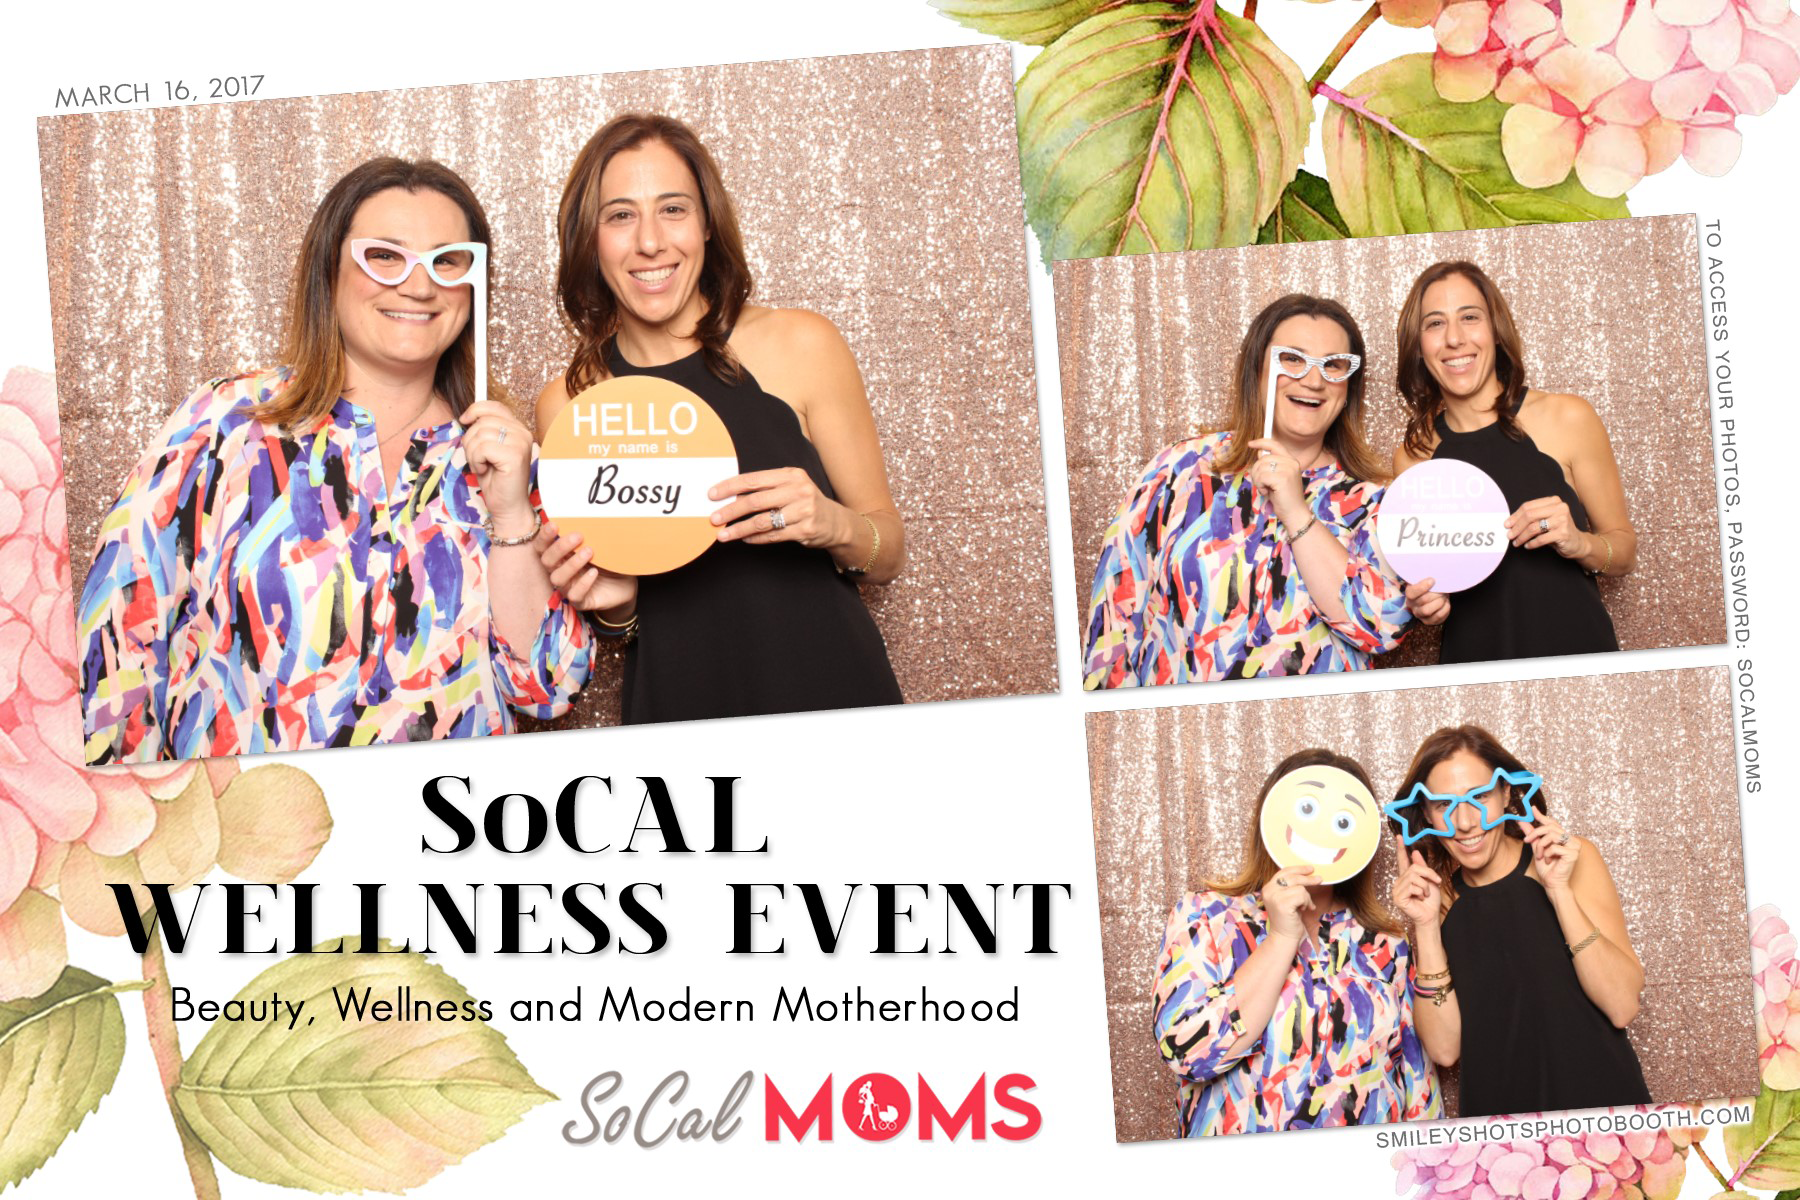 Socal Wellness Event Socal Moms Smiley Shots Photo Booth Photobooth (3).png